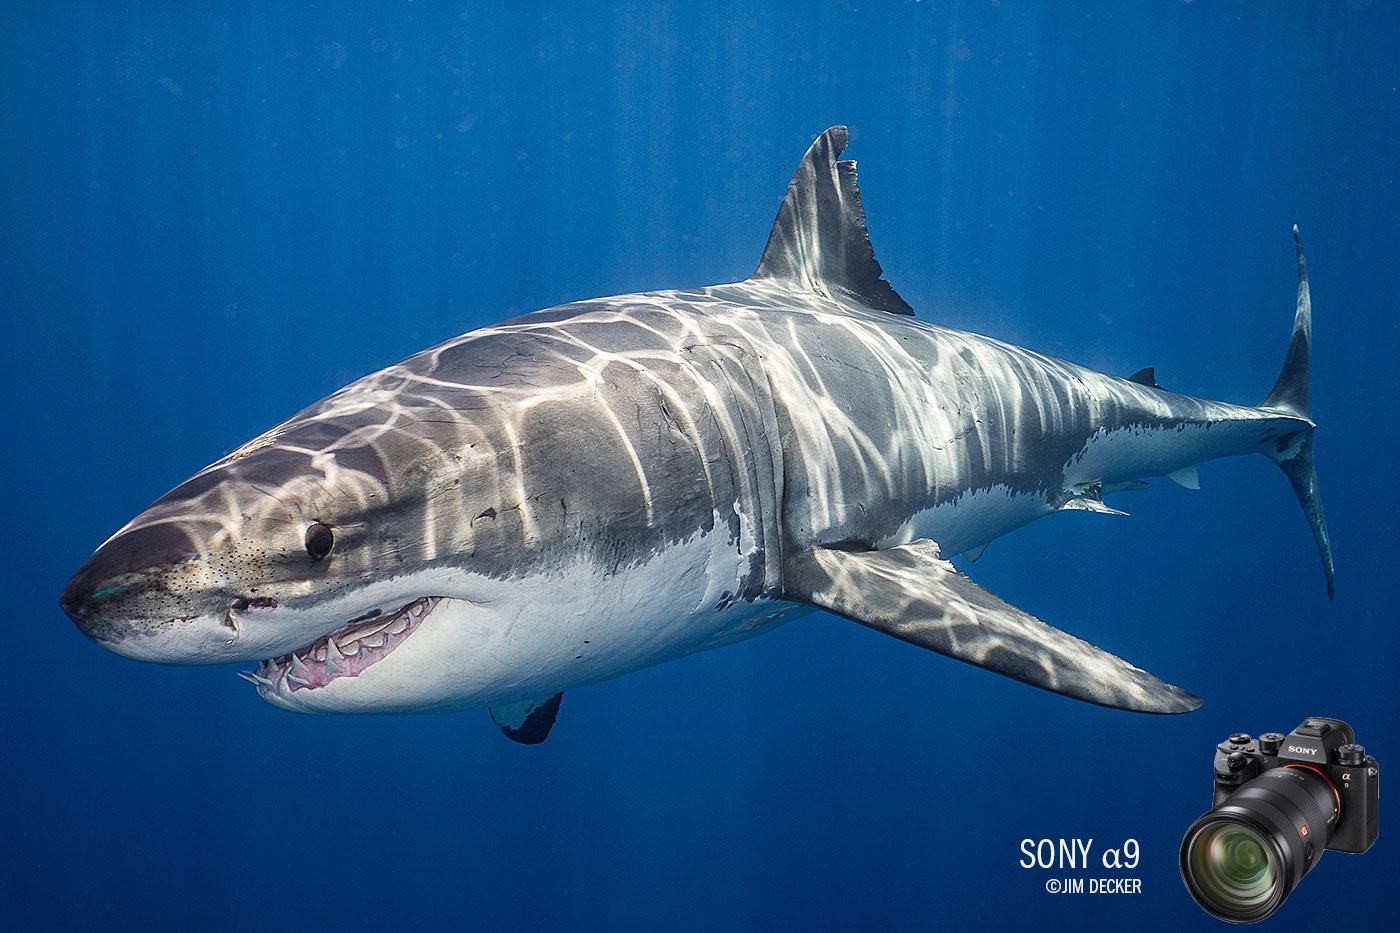 Sony a9 Underwater Camera Review—Shooting Great White Sharks